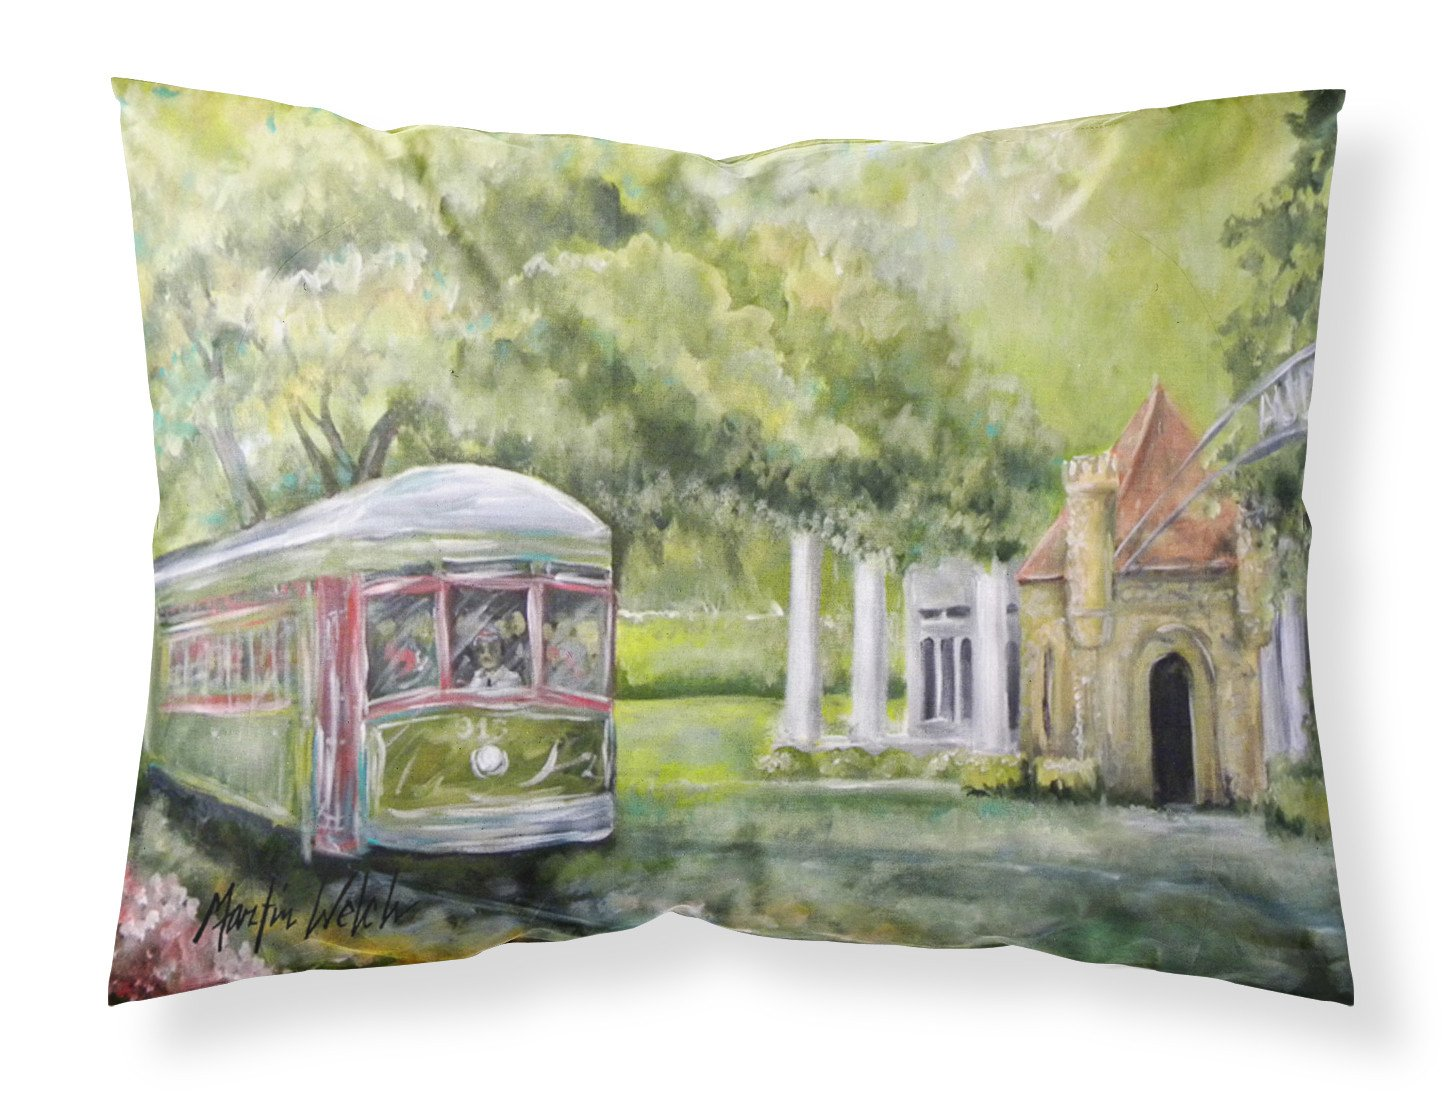 Streetcar Next Stop Audubon Park Moisture wicking Fabric standard pillowcase by Caroline's Treasures